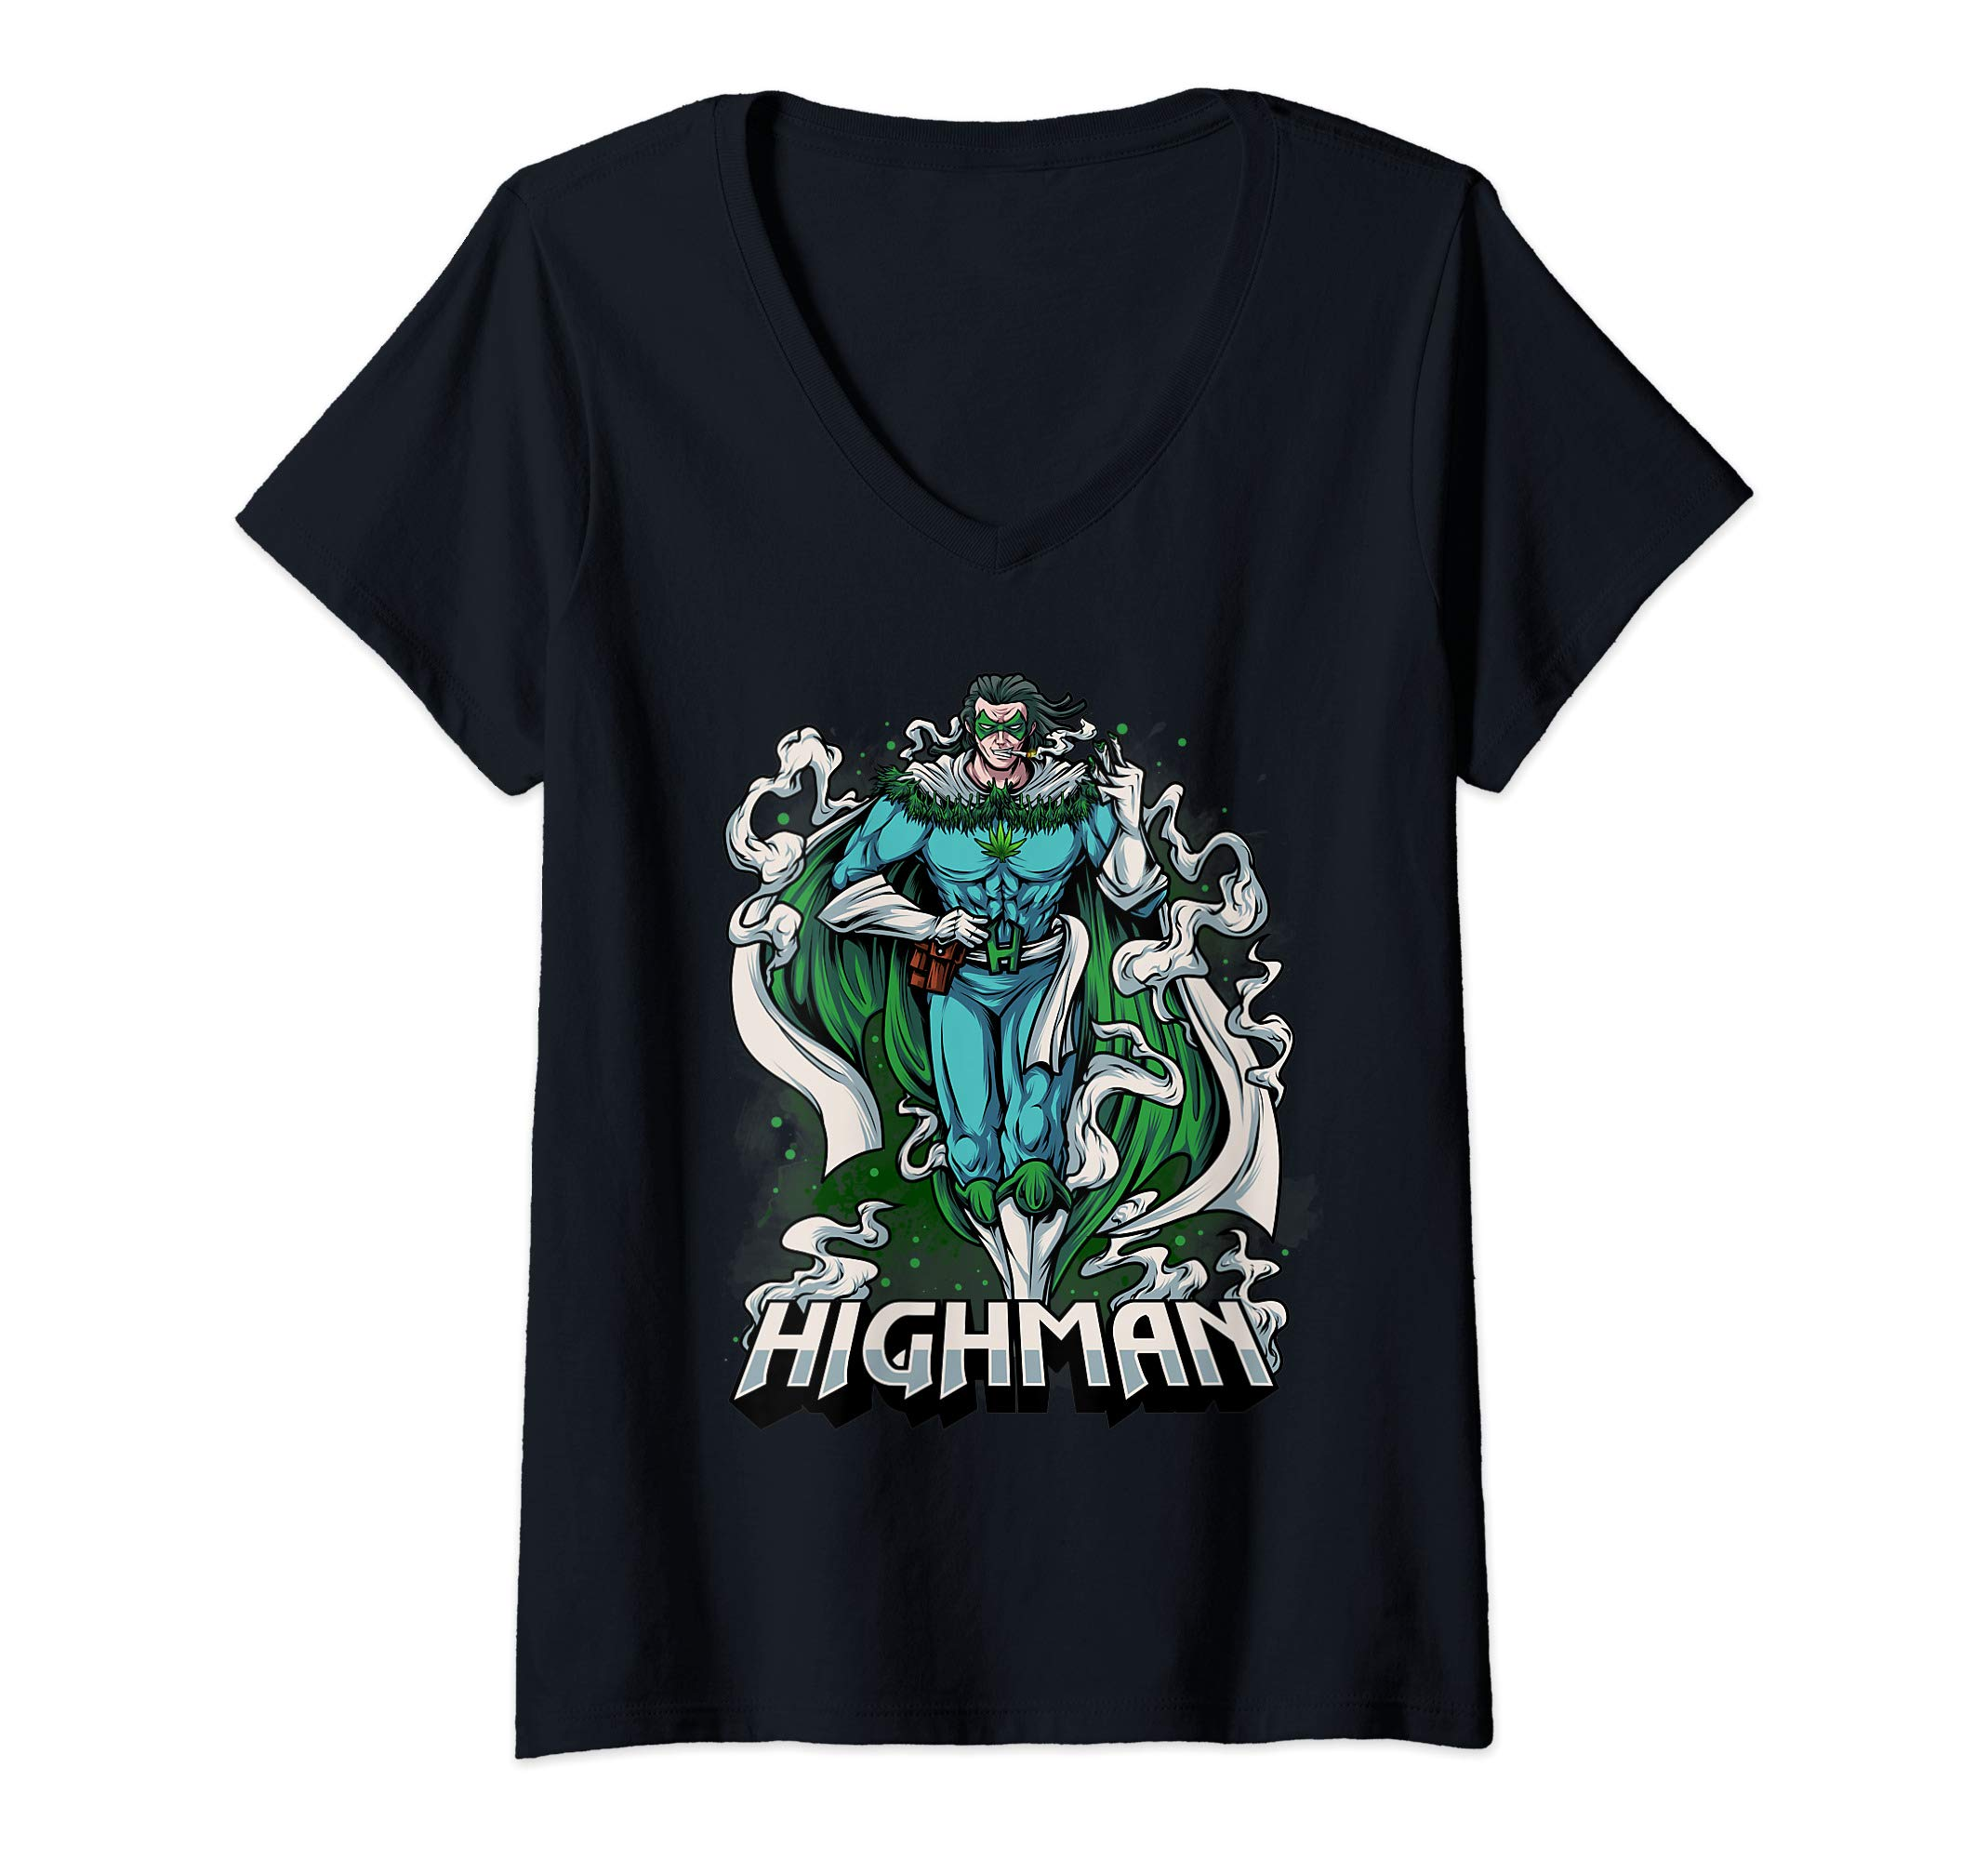 Womens Highman Funny Weed Superhero Gift For Weed Lovers V-Neck T-Shirt